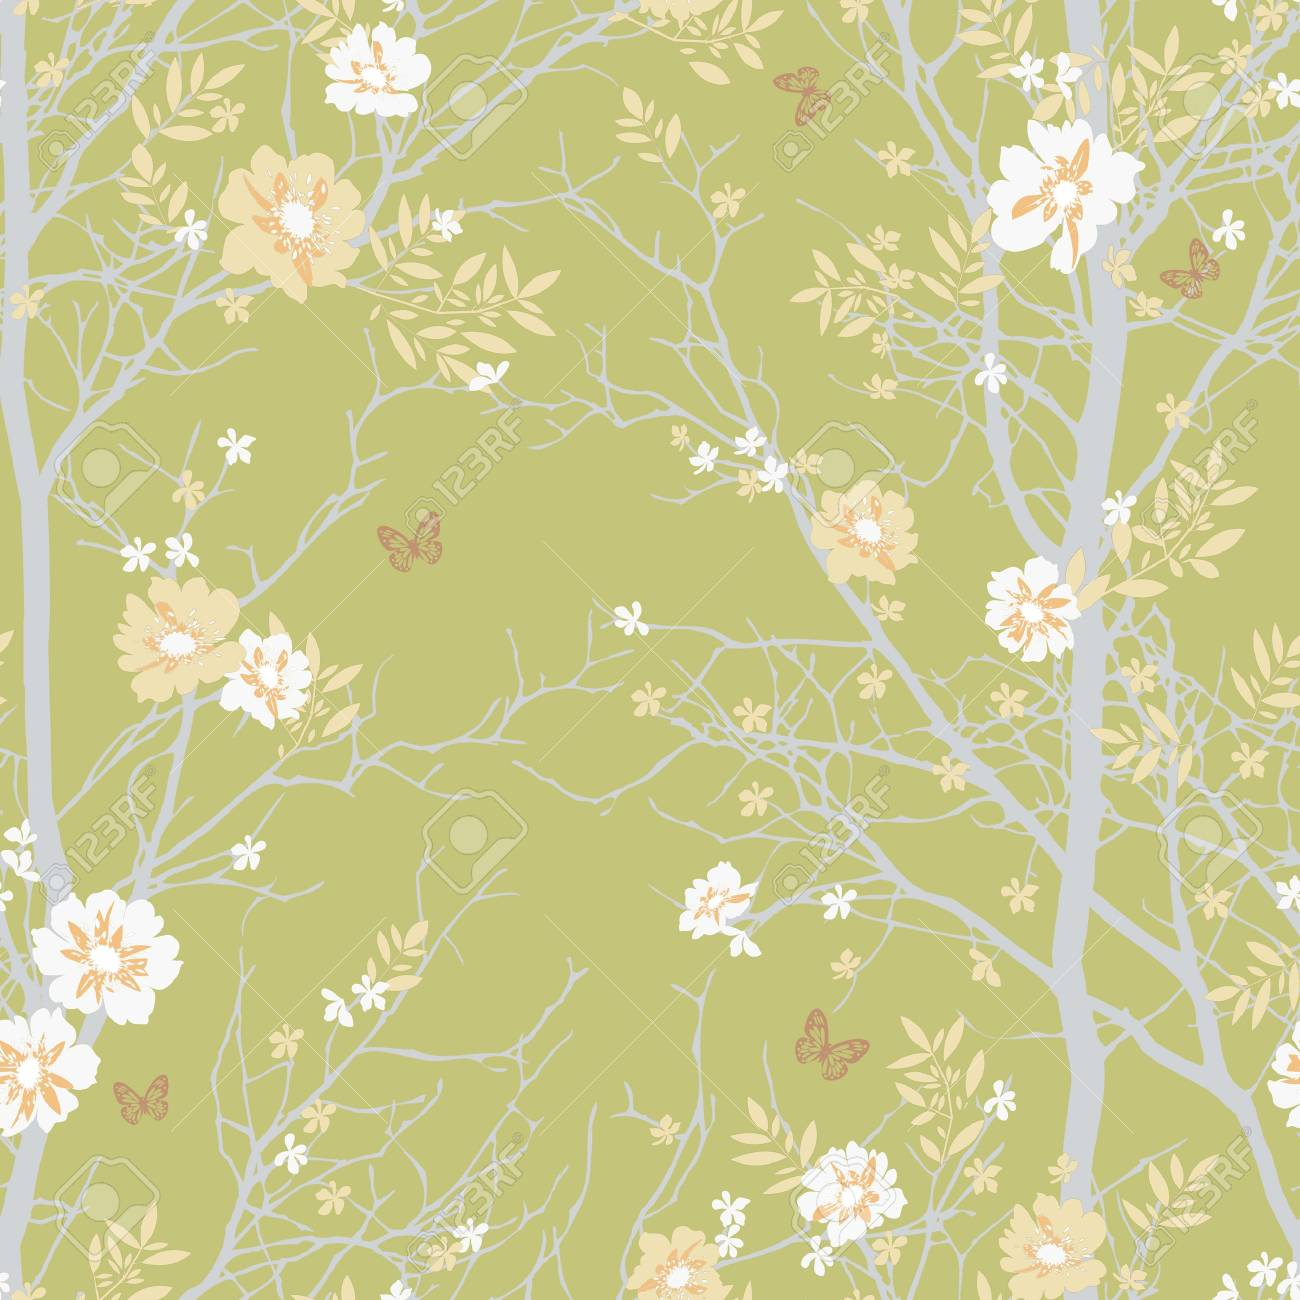 Classical style pattern seamless background - For easy making seamless pattern use it for filling any contours Stock Photo - 20880138